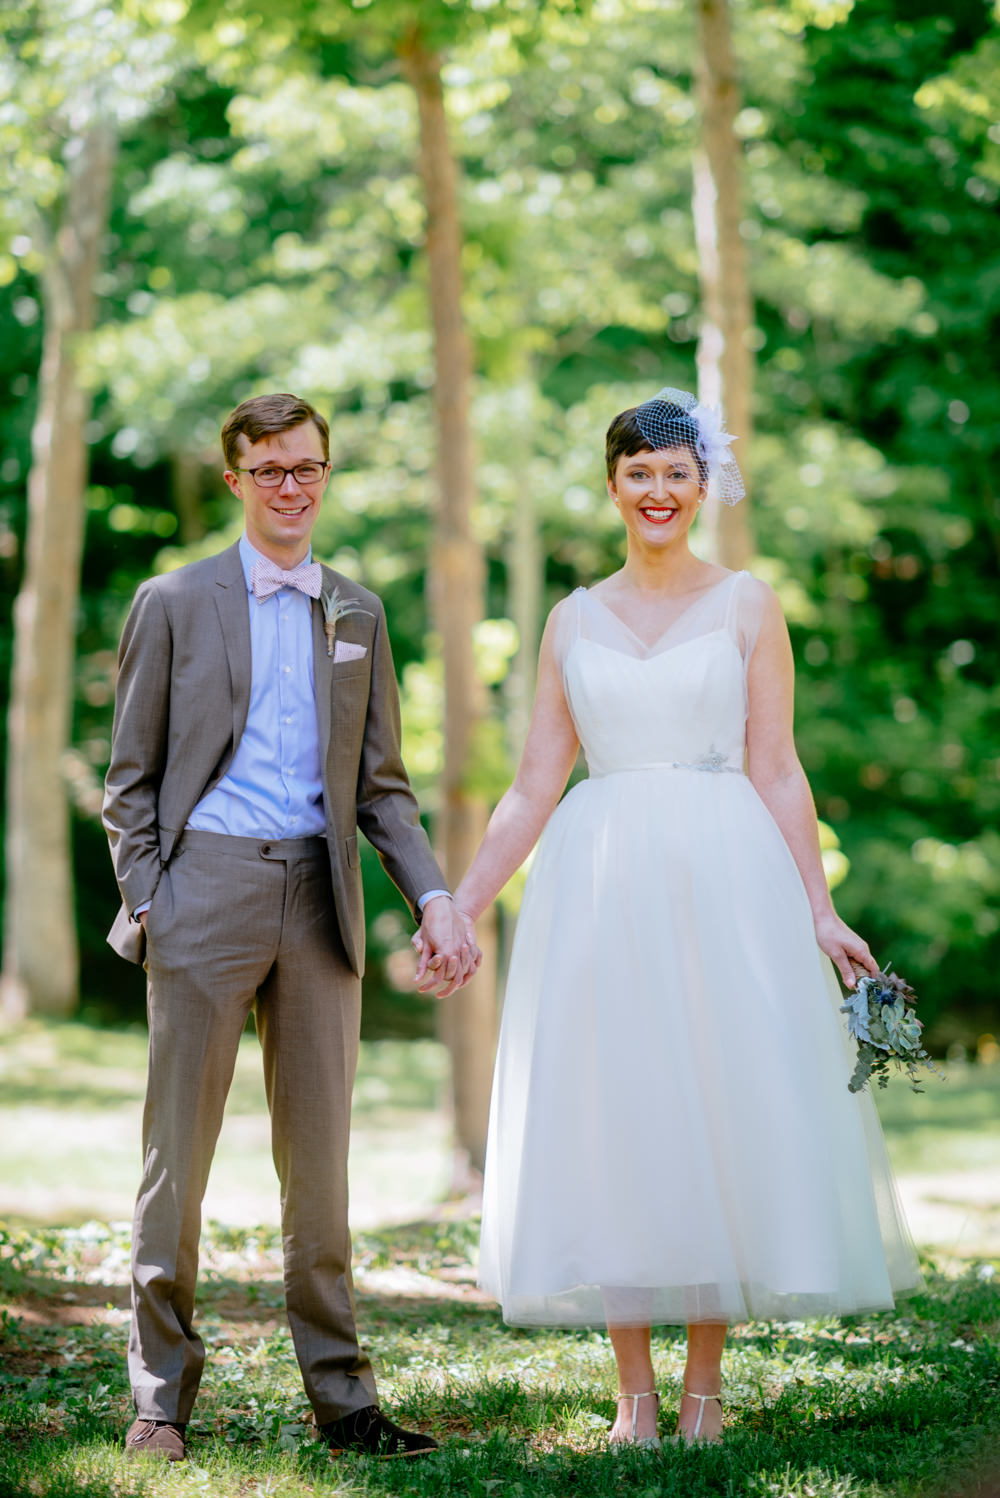 adorable bride and groom camp muffly wv wedding